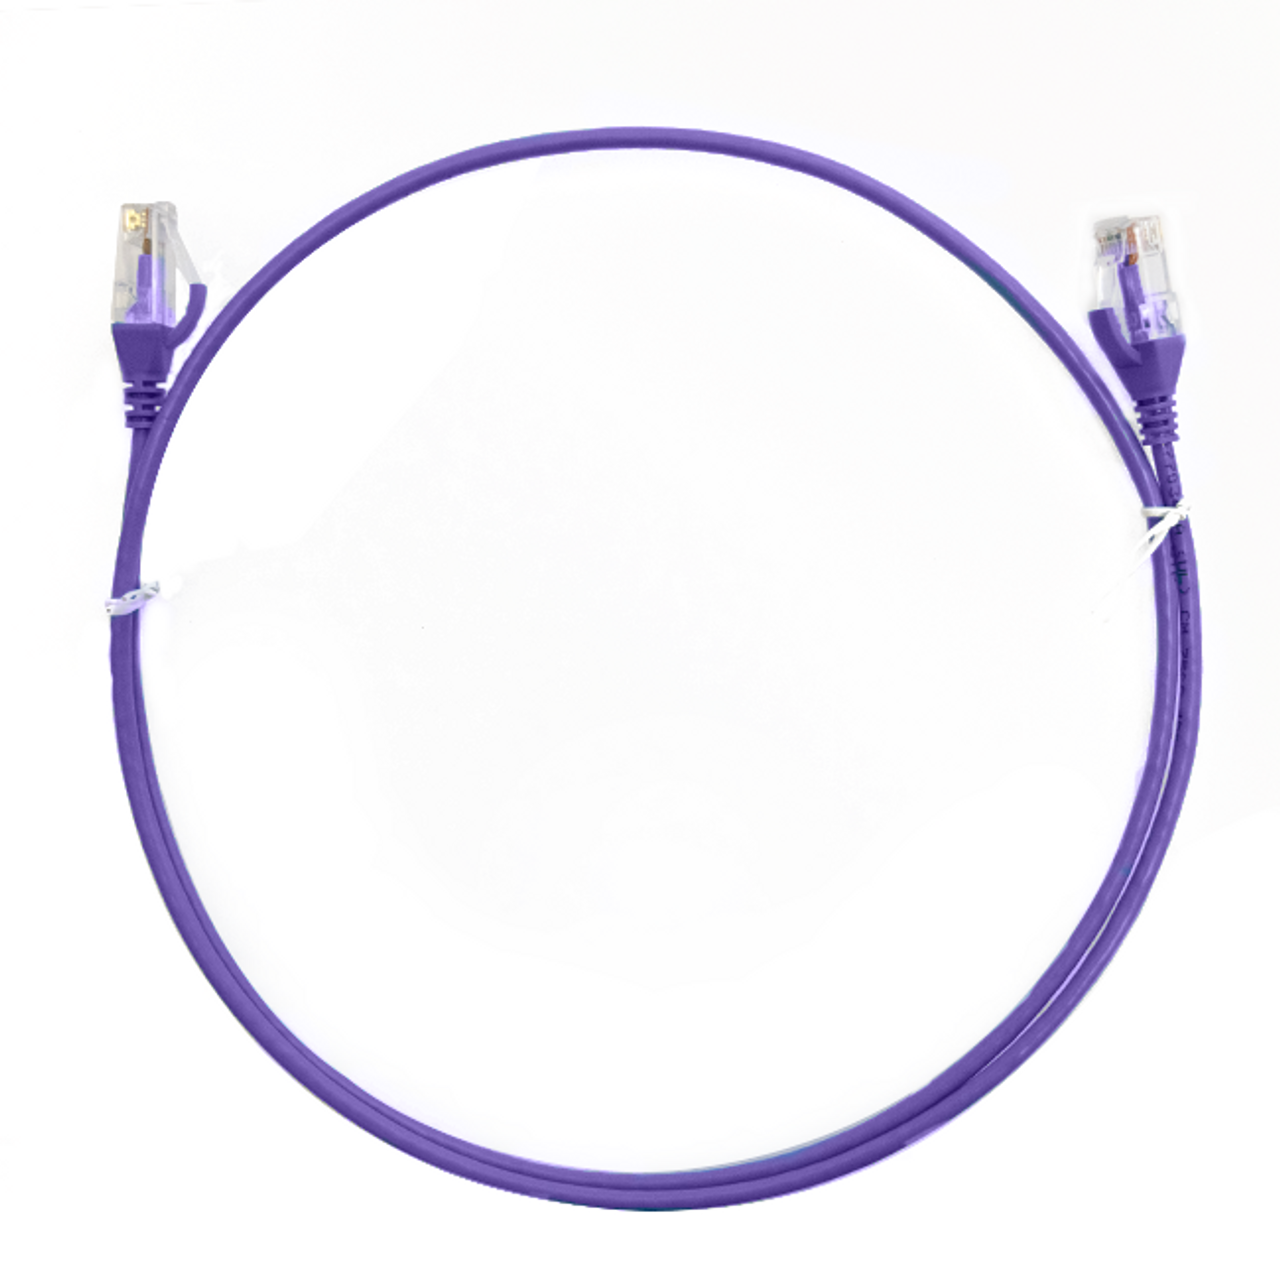 Image for 1.5m Cat 6 Ultra Thin LSZH Ethernet Network Cables: Purple CX Computer Superstore